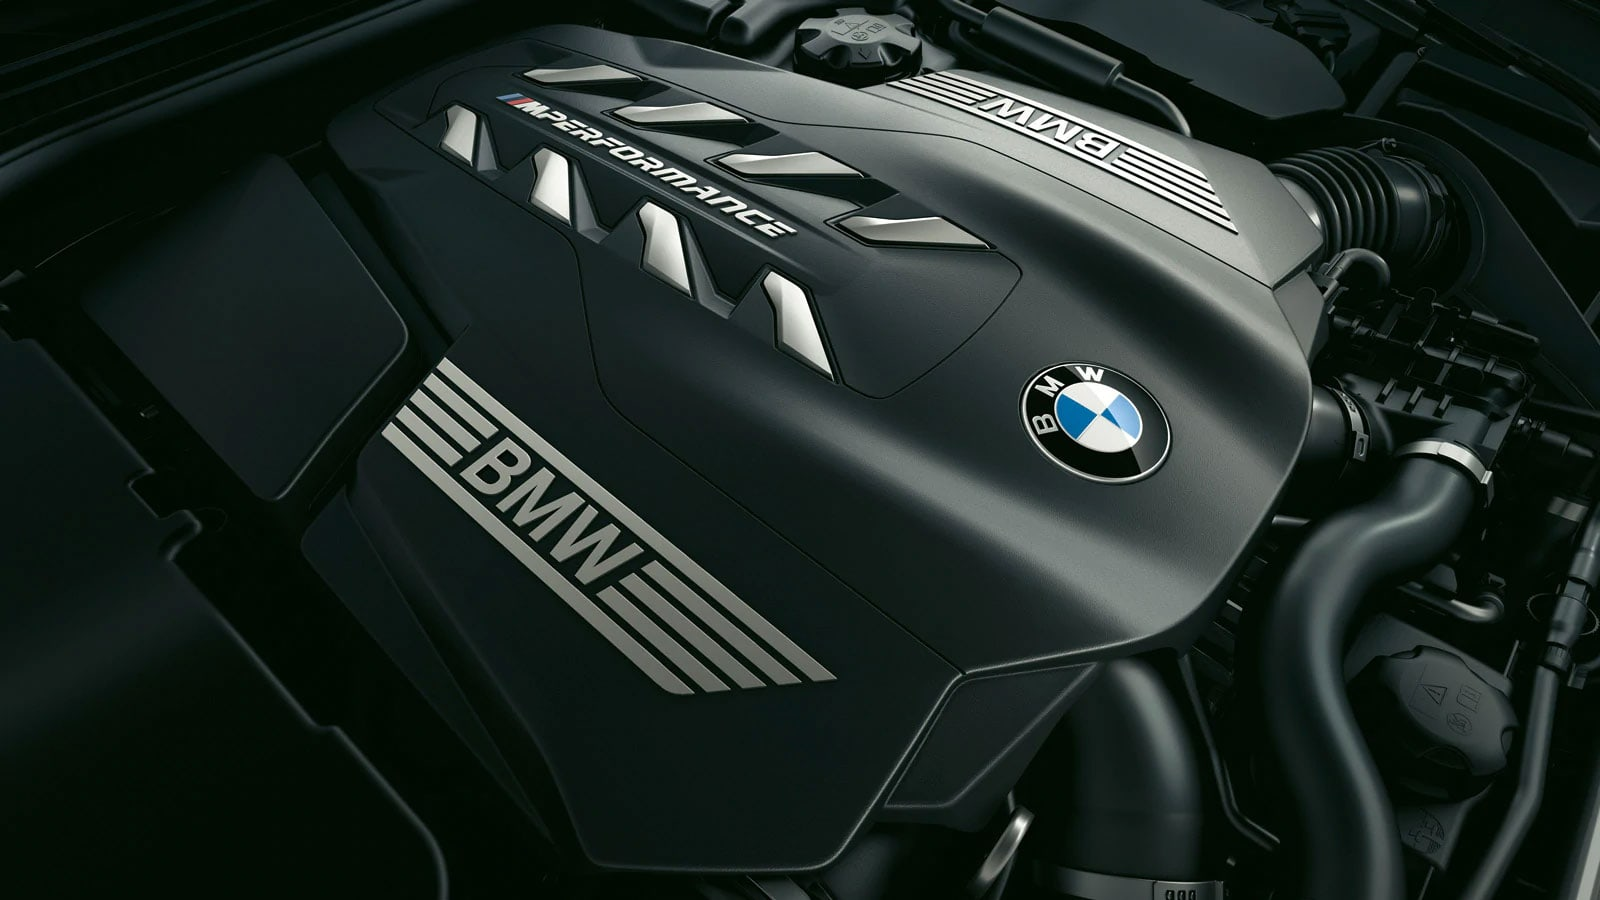 The BMW 8 Series engine.